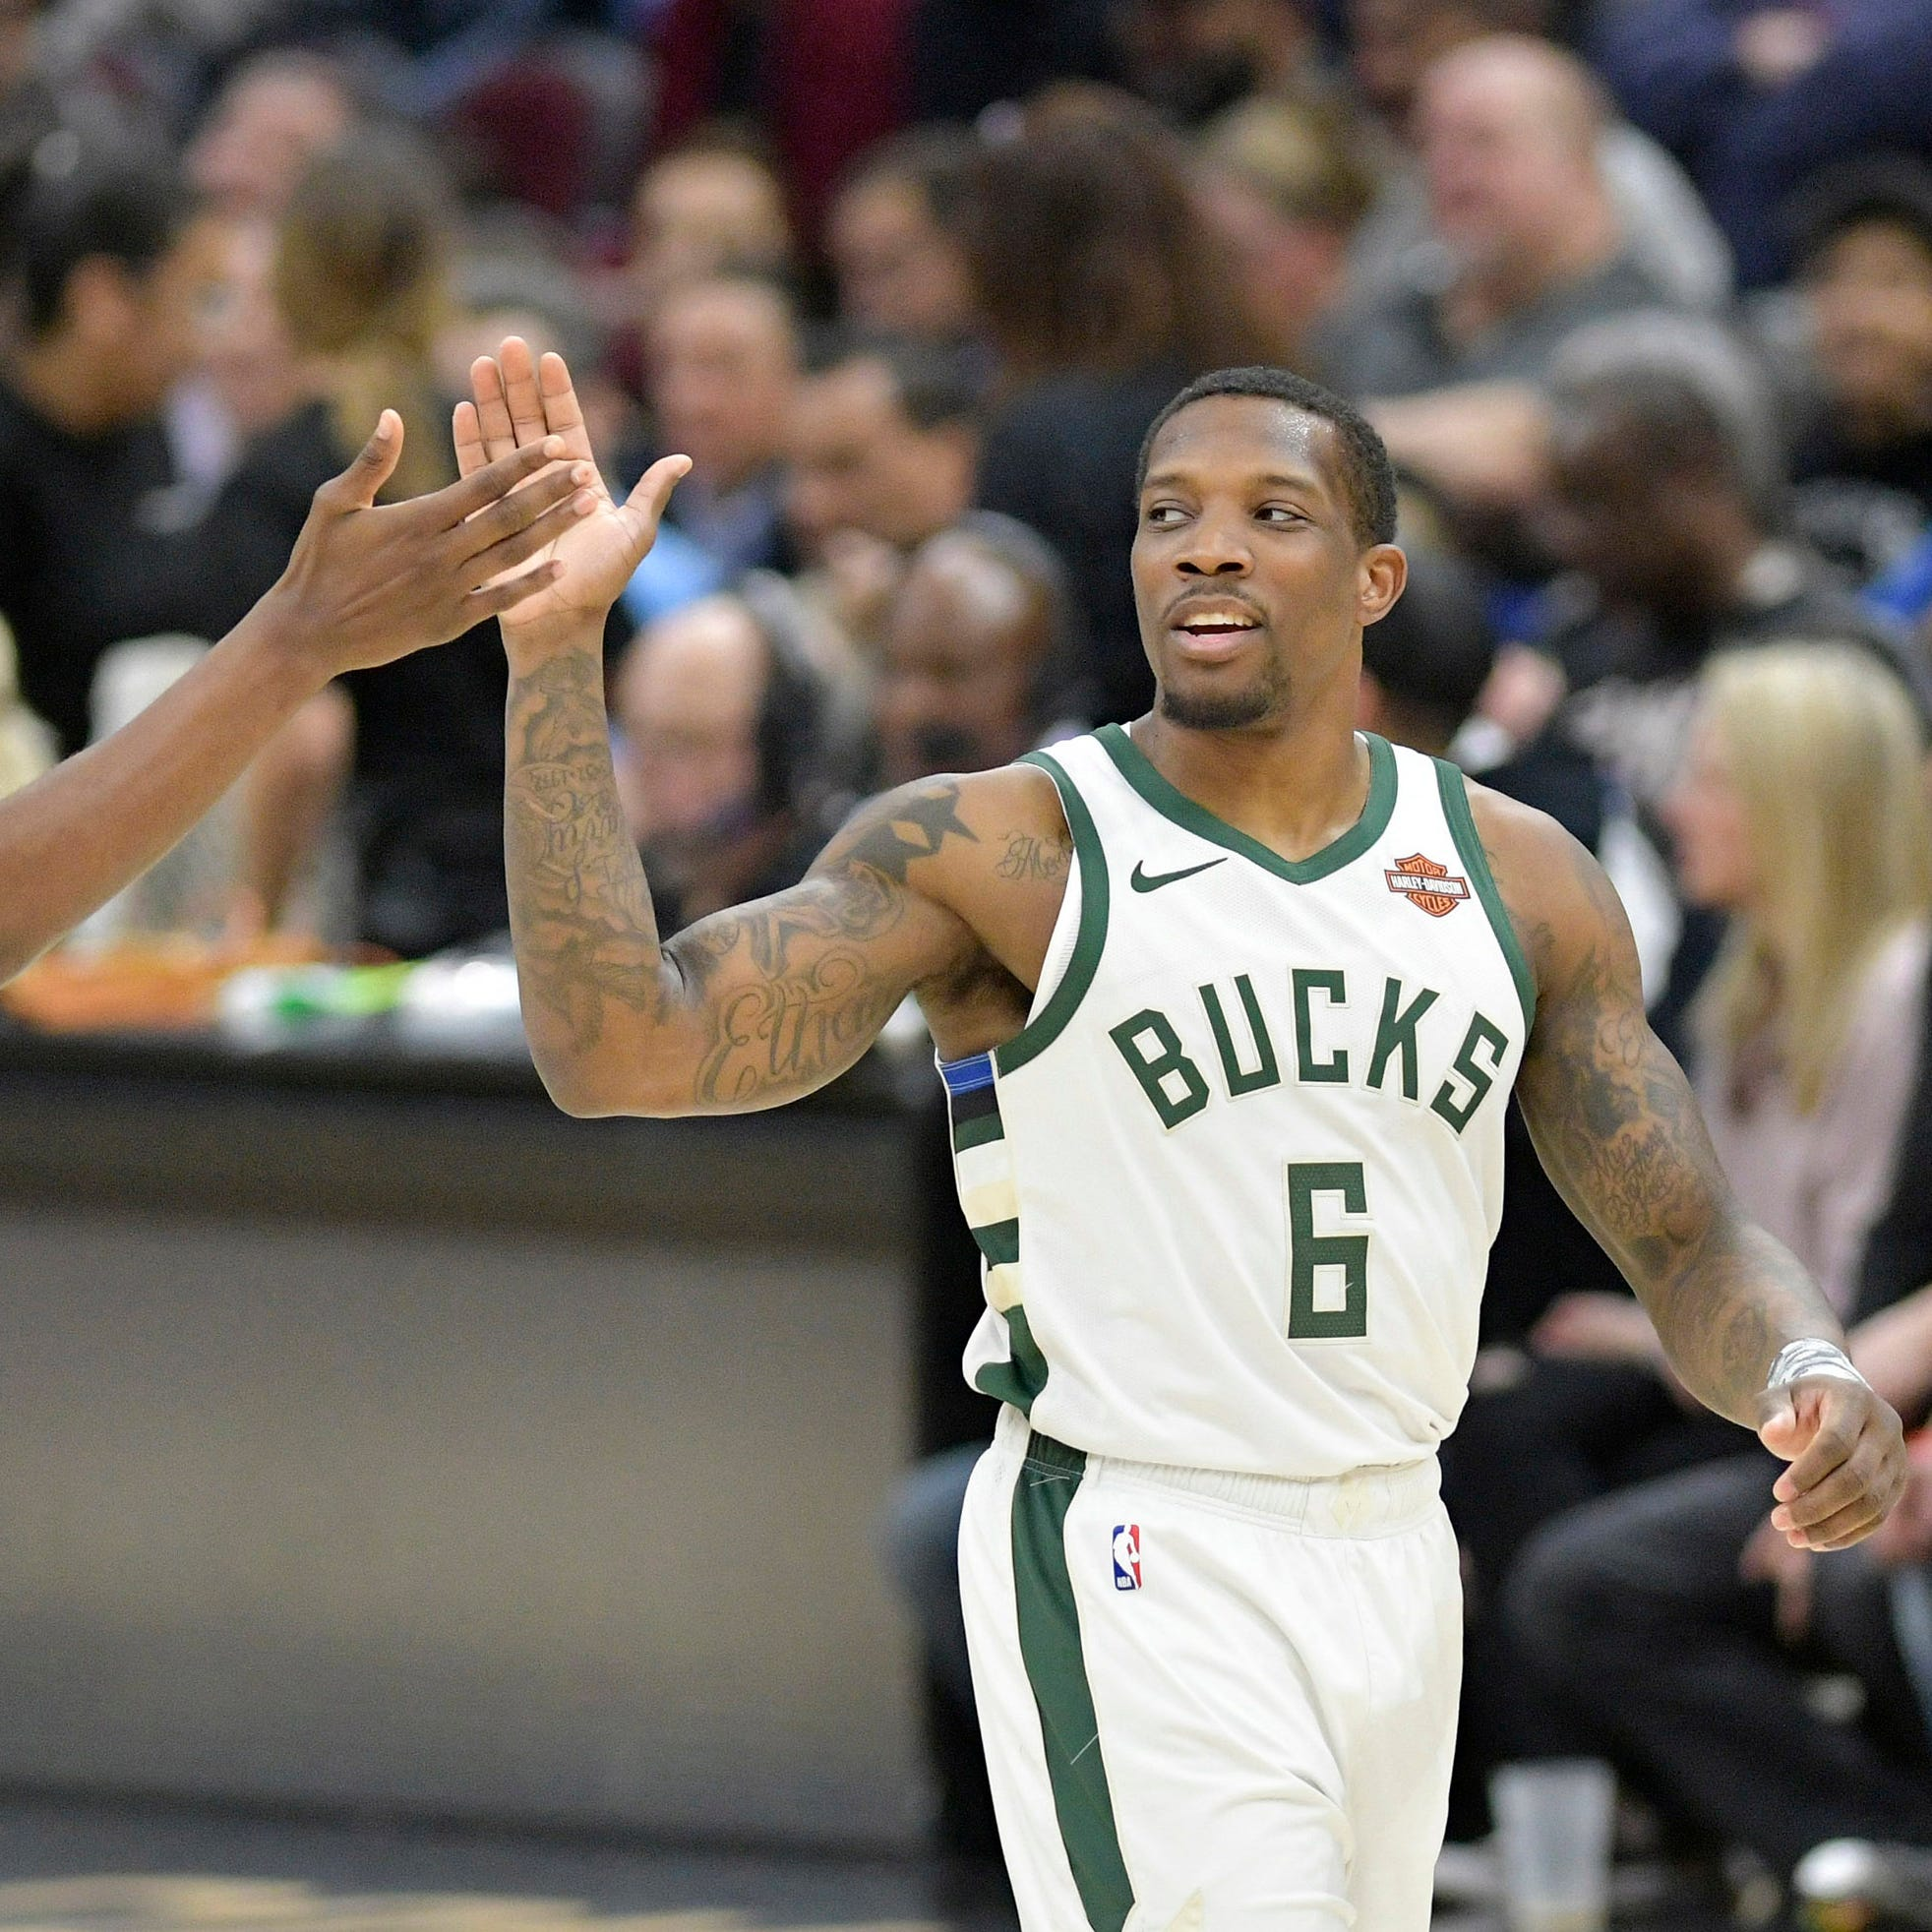 Eric Bledsoe hasn't stood out against Celtics, but he's getting advice from Khris Middleton, support from teammates